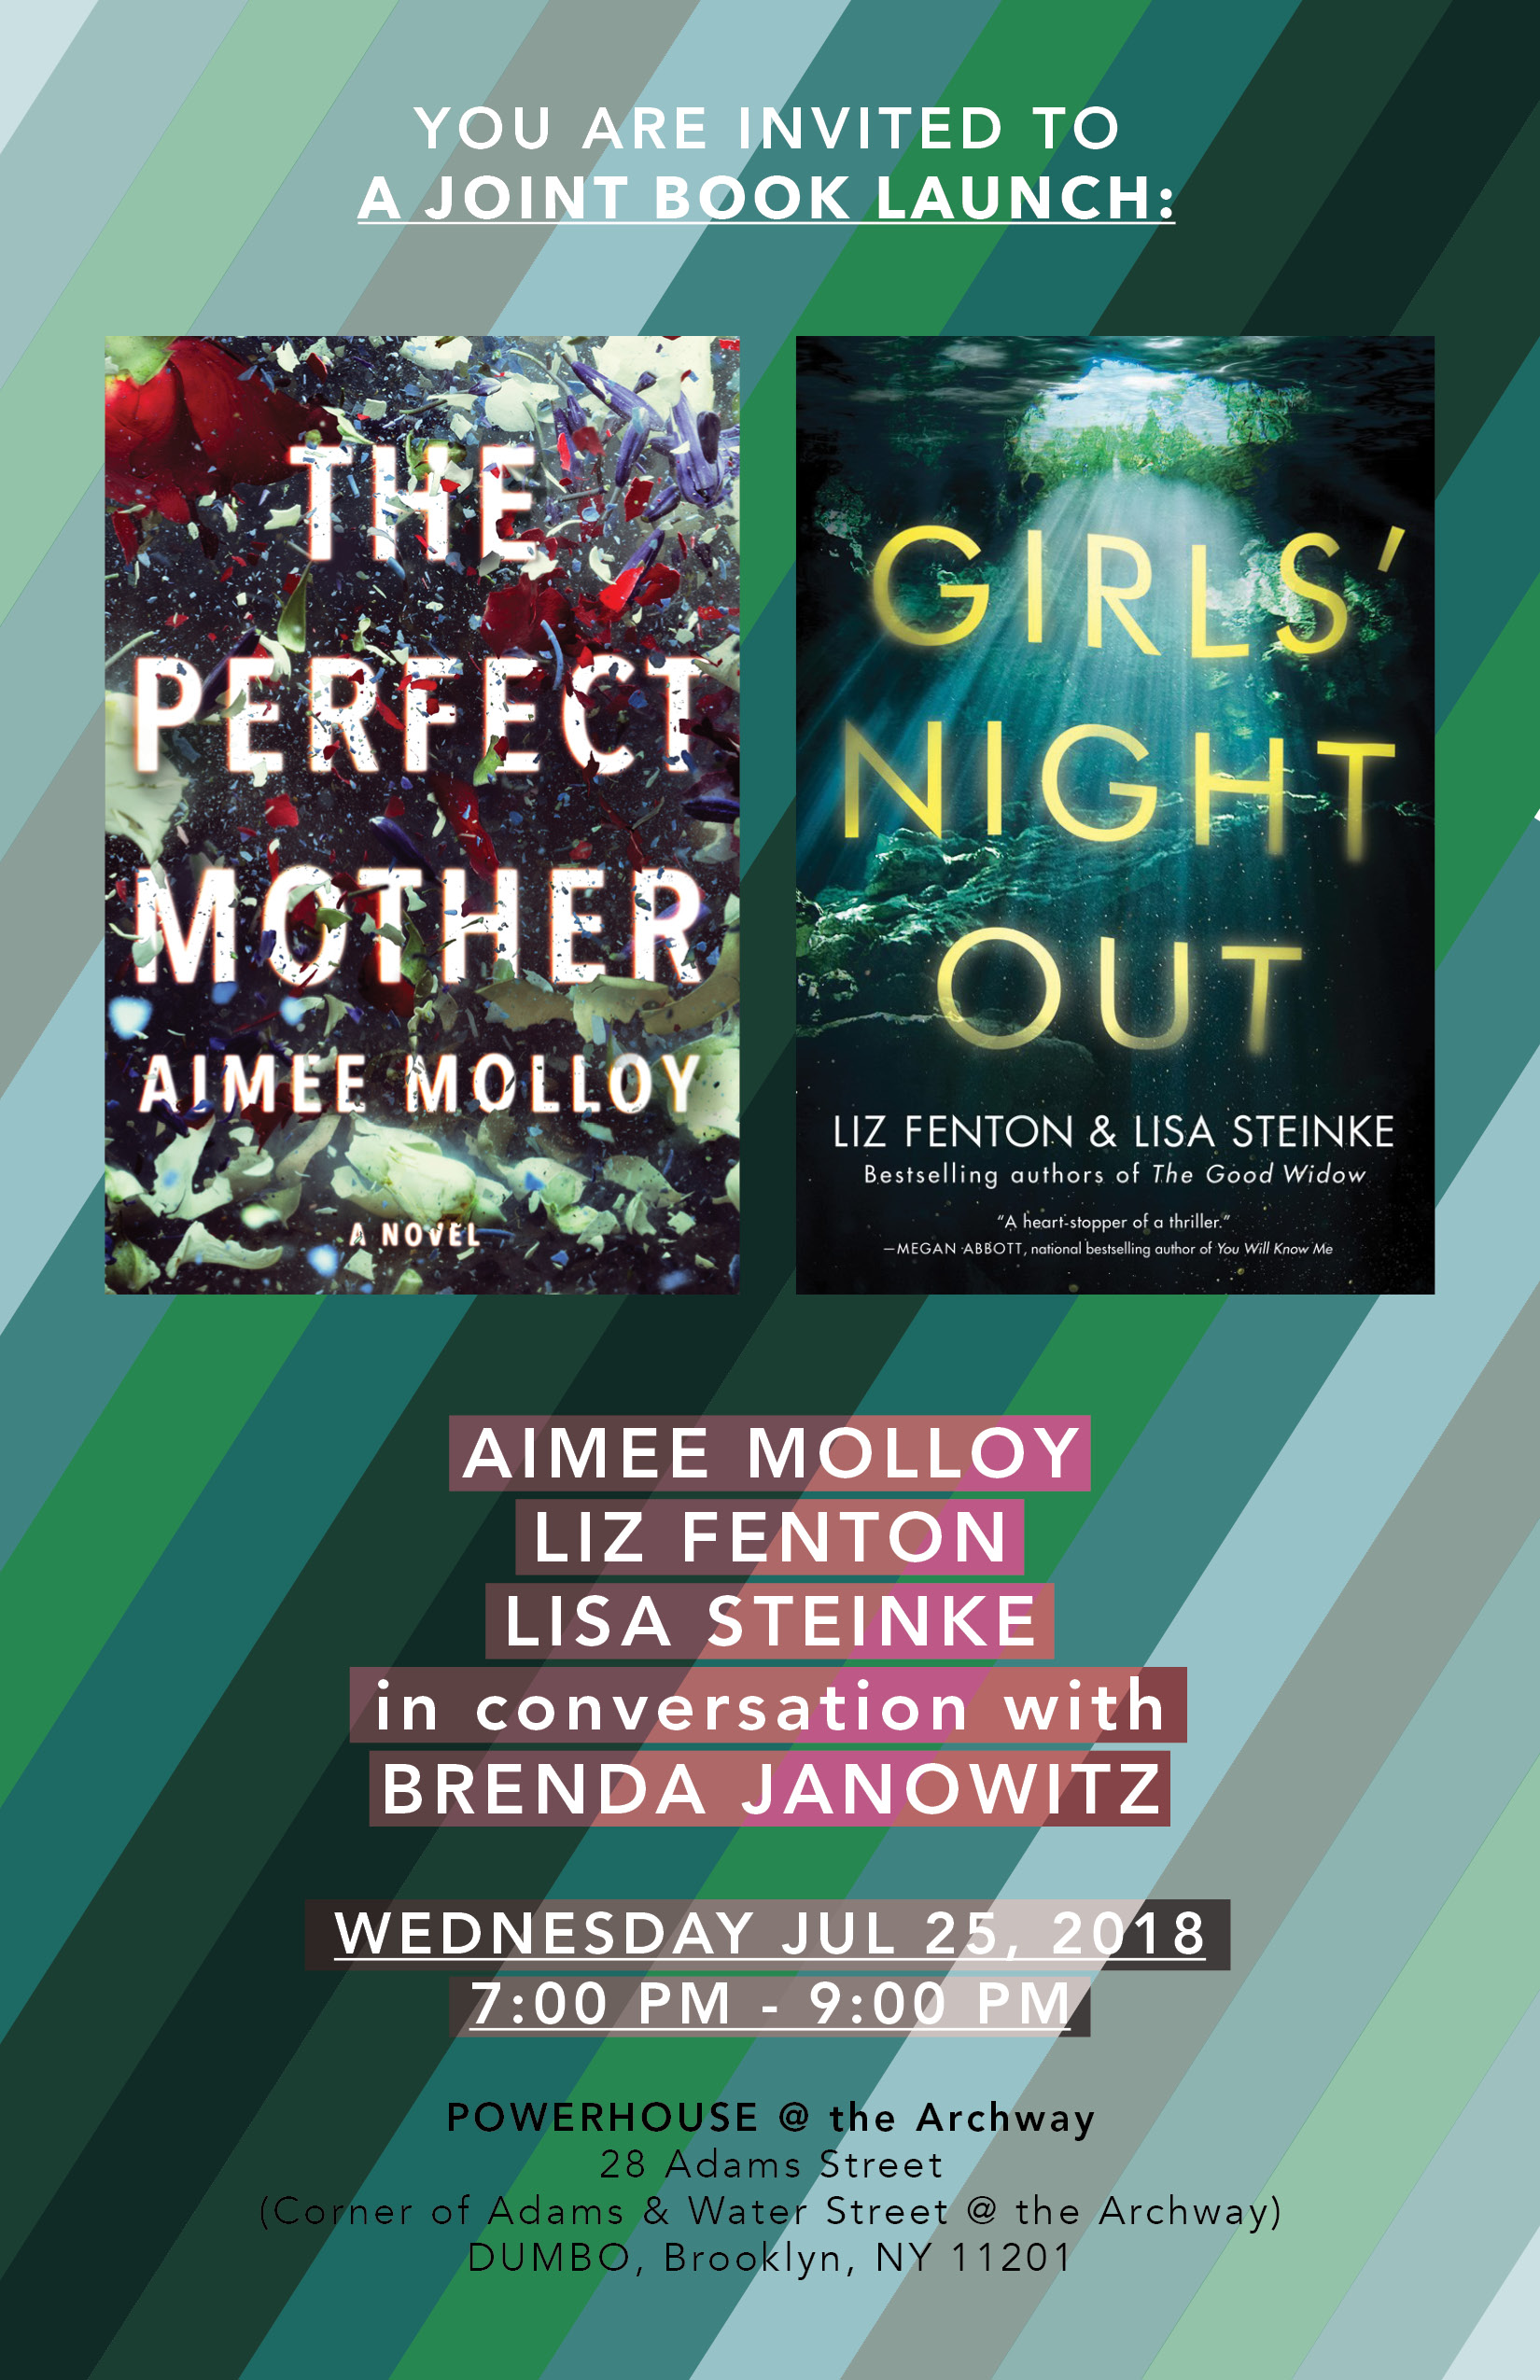 Joint Book Launch: The Perfect Mother by Aimee Molloy & Girls' Night Out by Liz Fenton & Lisa Steinke — in conversation w/ Brenda Janowitz